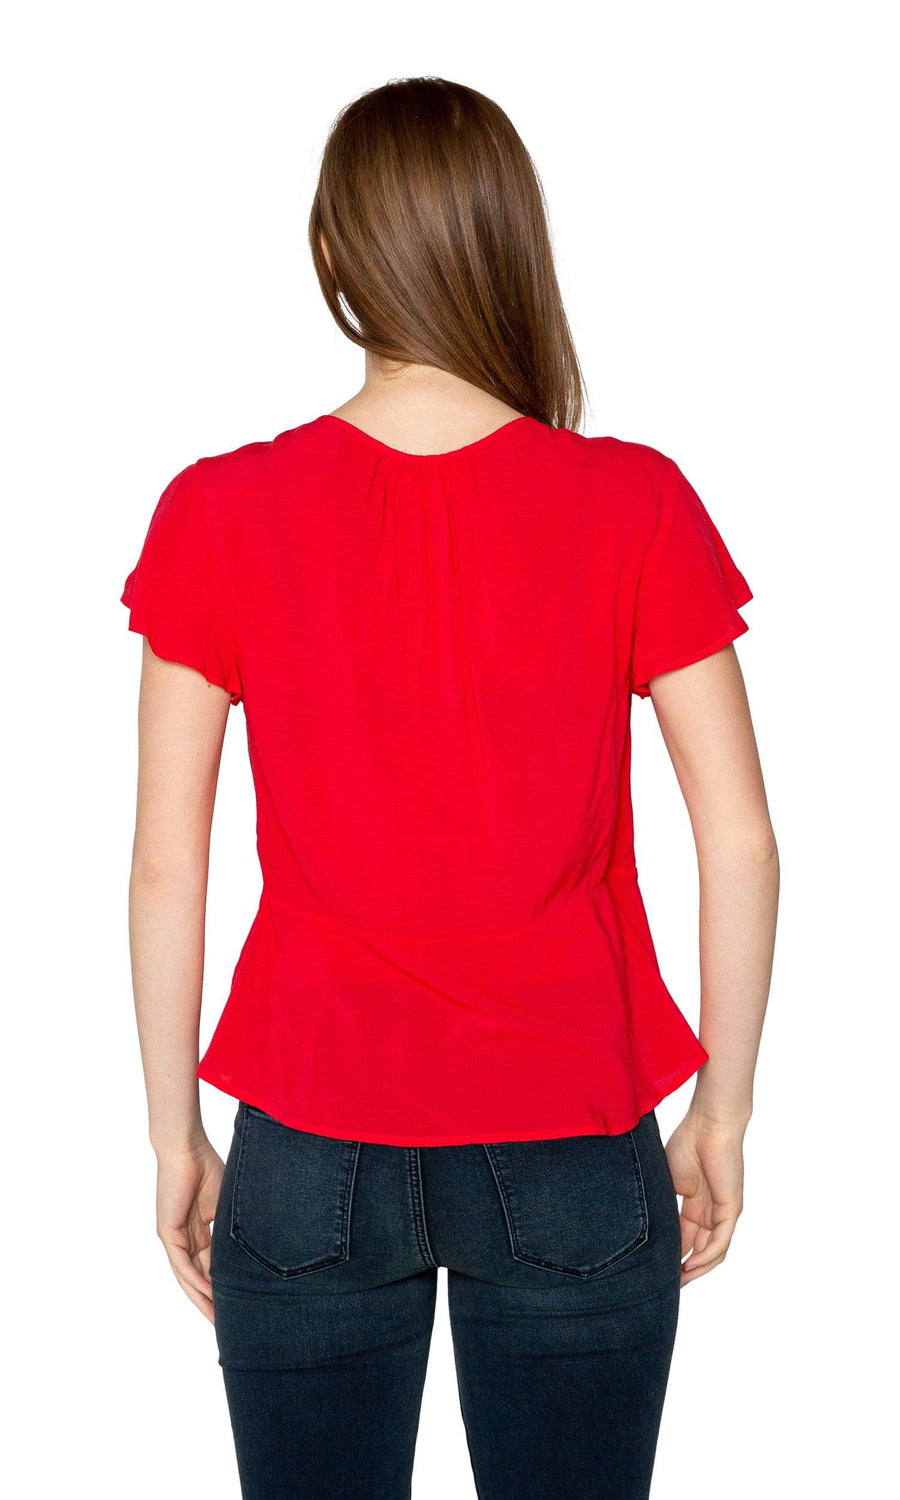 Velvet by Graham & Specer Lunara Rayon Challis Wrap Top